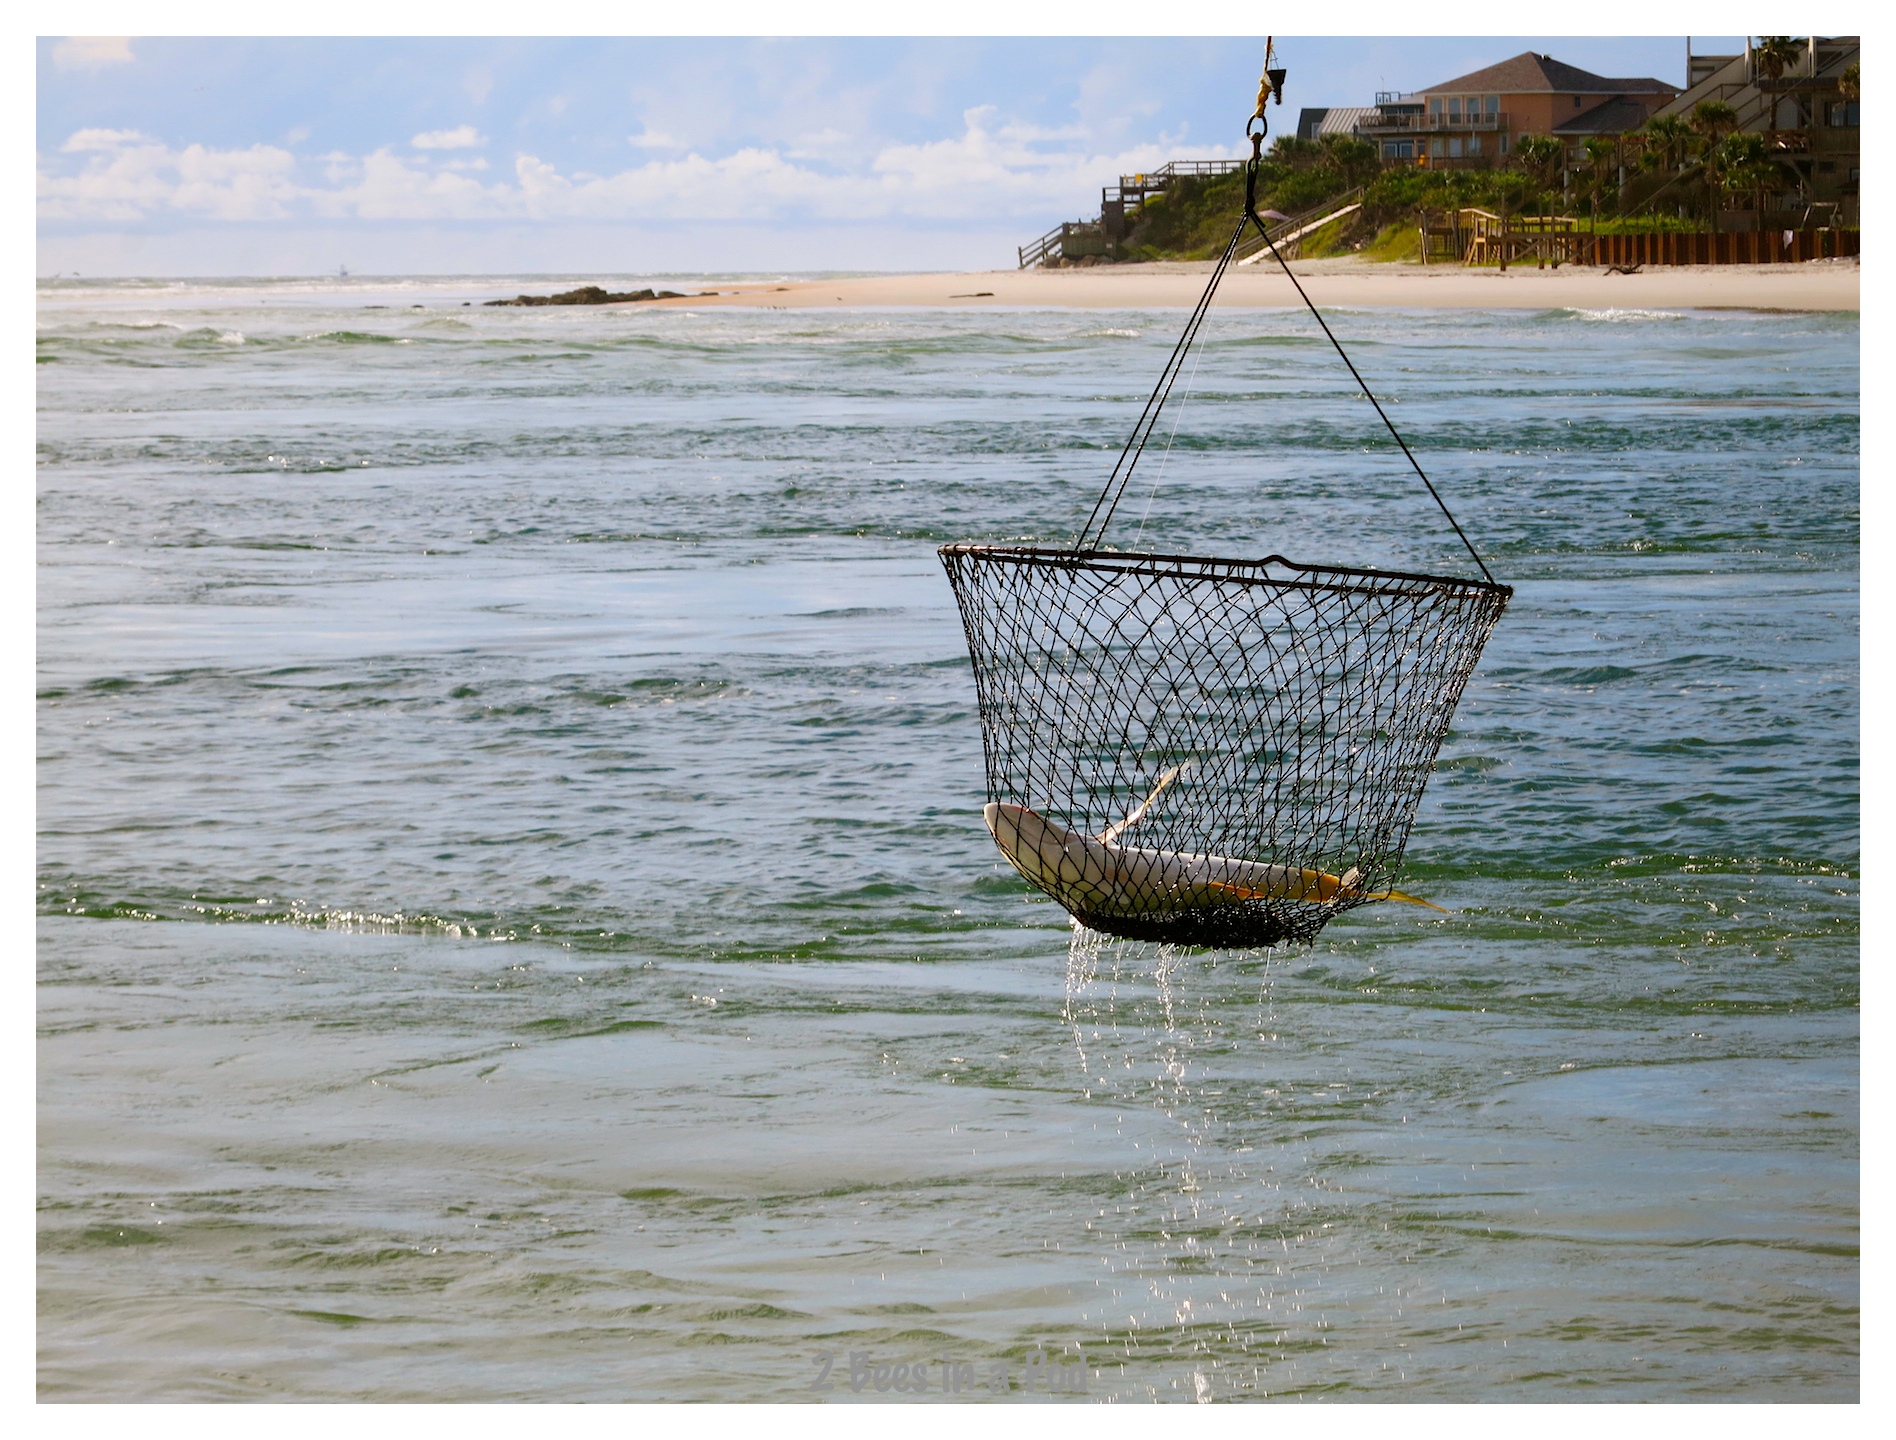 Fisherman putting his fresh caught fish into a basket to bring him in @ Crescent Beach, Florida